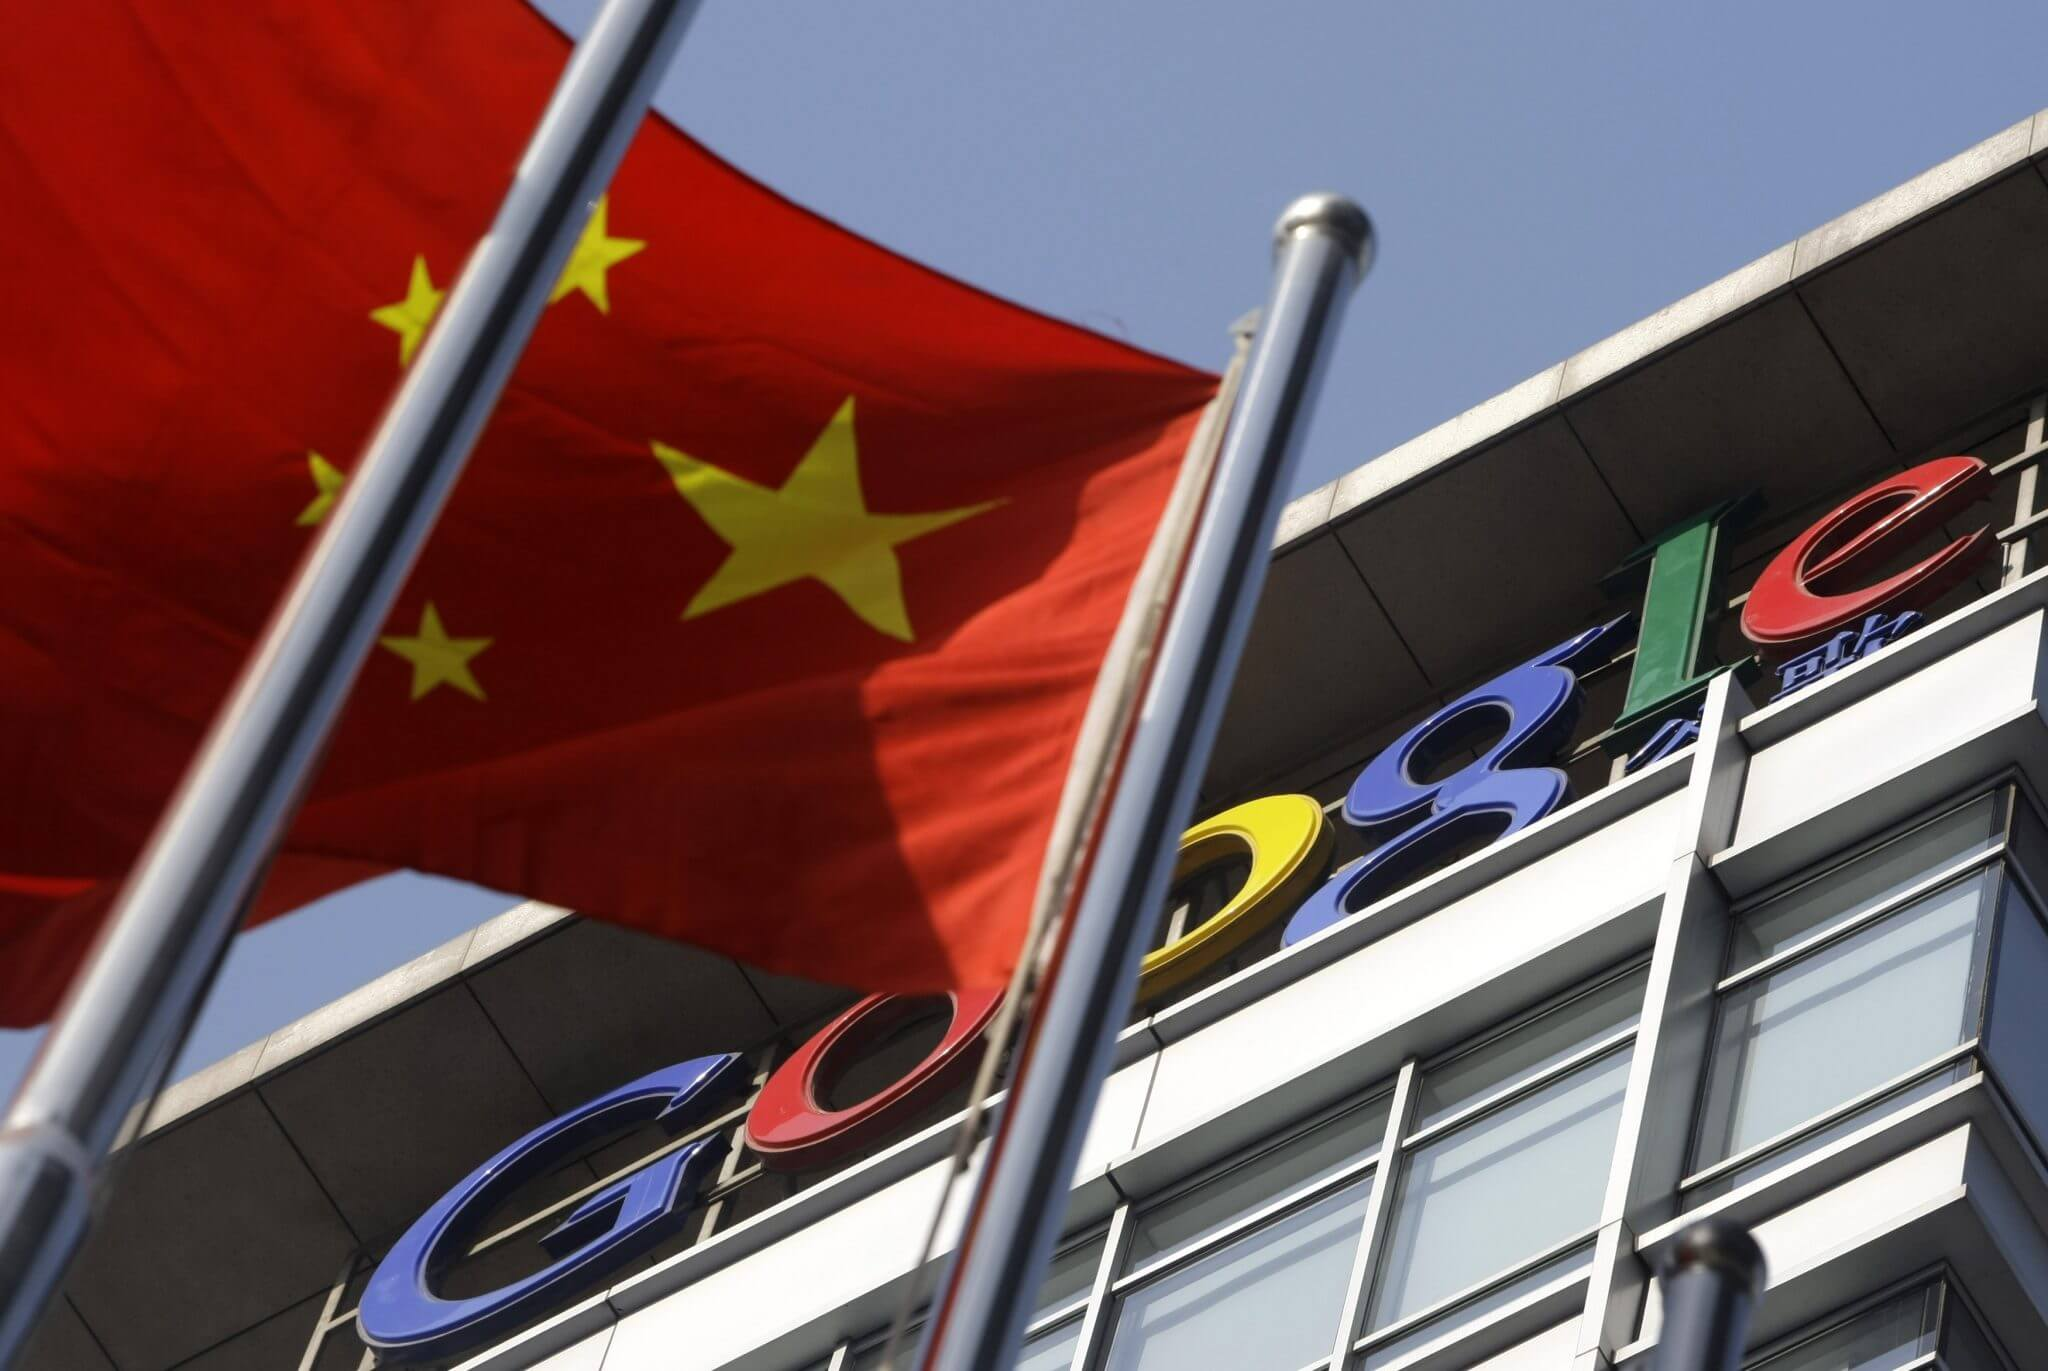 Google denies that it's continued work on a censored search engine for China